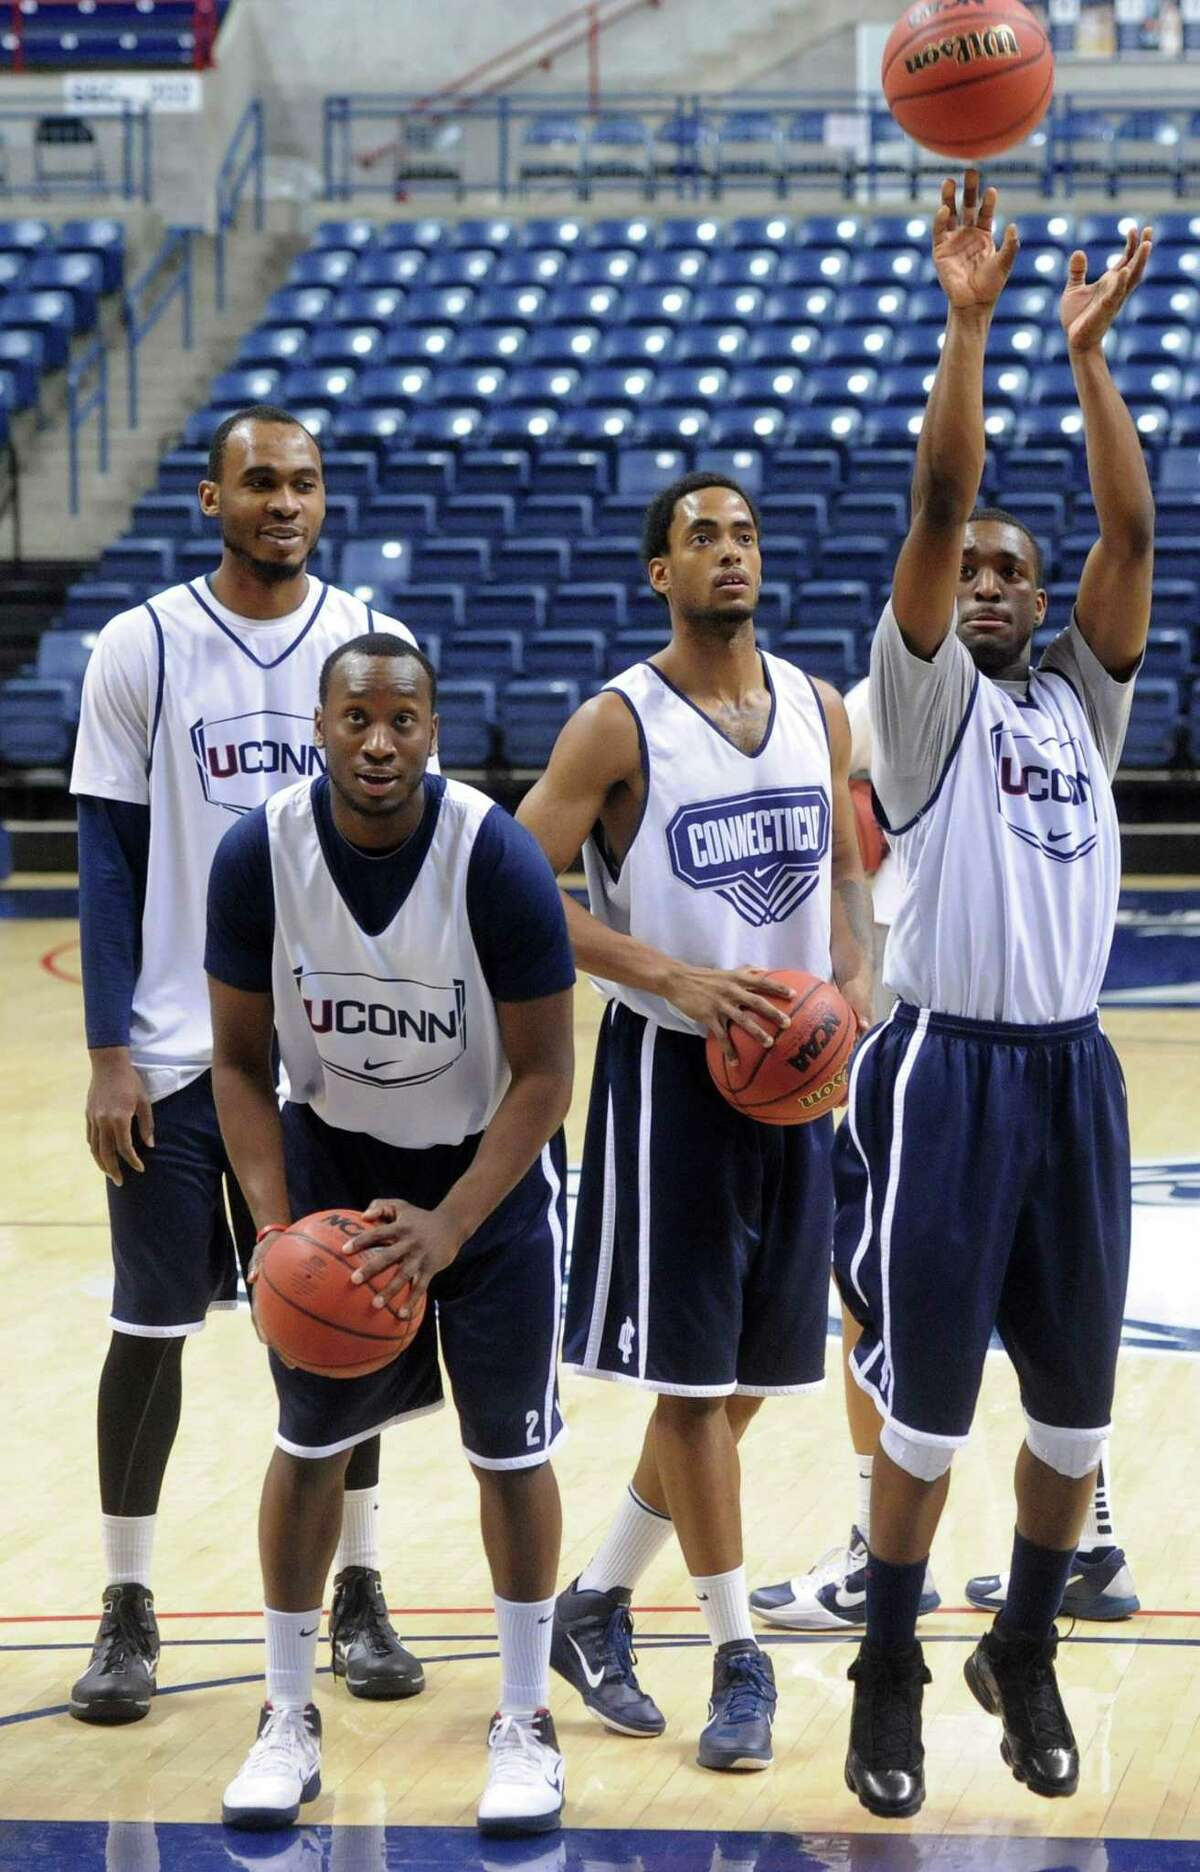 UConn players, from left, Charles Okwandu, Donnell Beverly, Jamal Coombs-McDaniel and Kemba Walker during a 2011 practice at Gampel Pavilion.